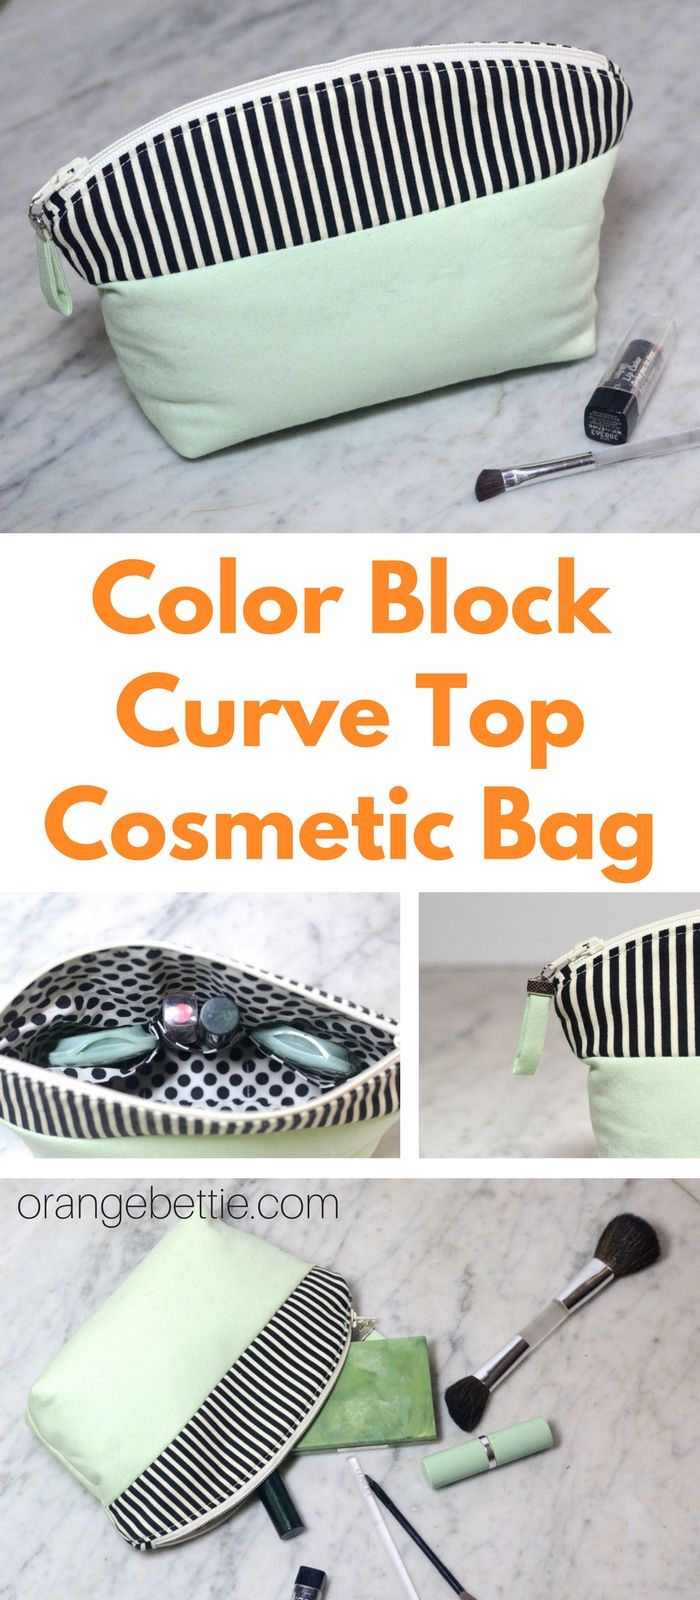 Color Block Curve Top Cosmetic Bag Tutorial – Orange Bettie